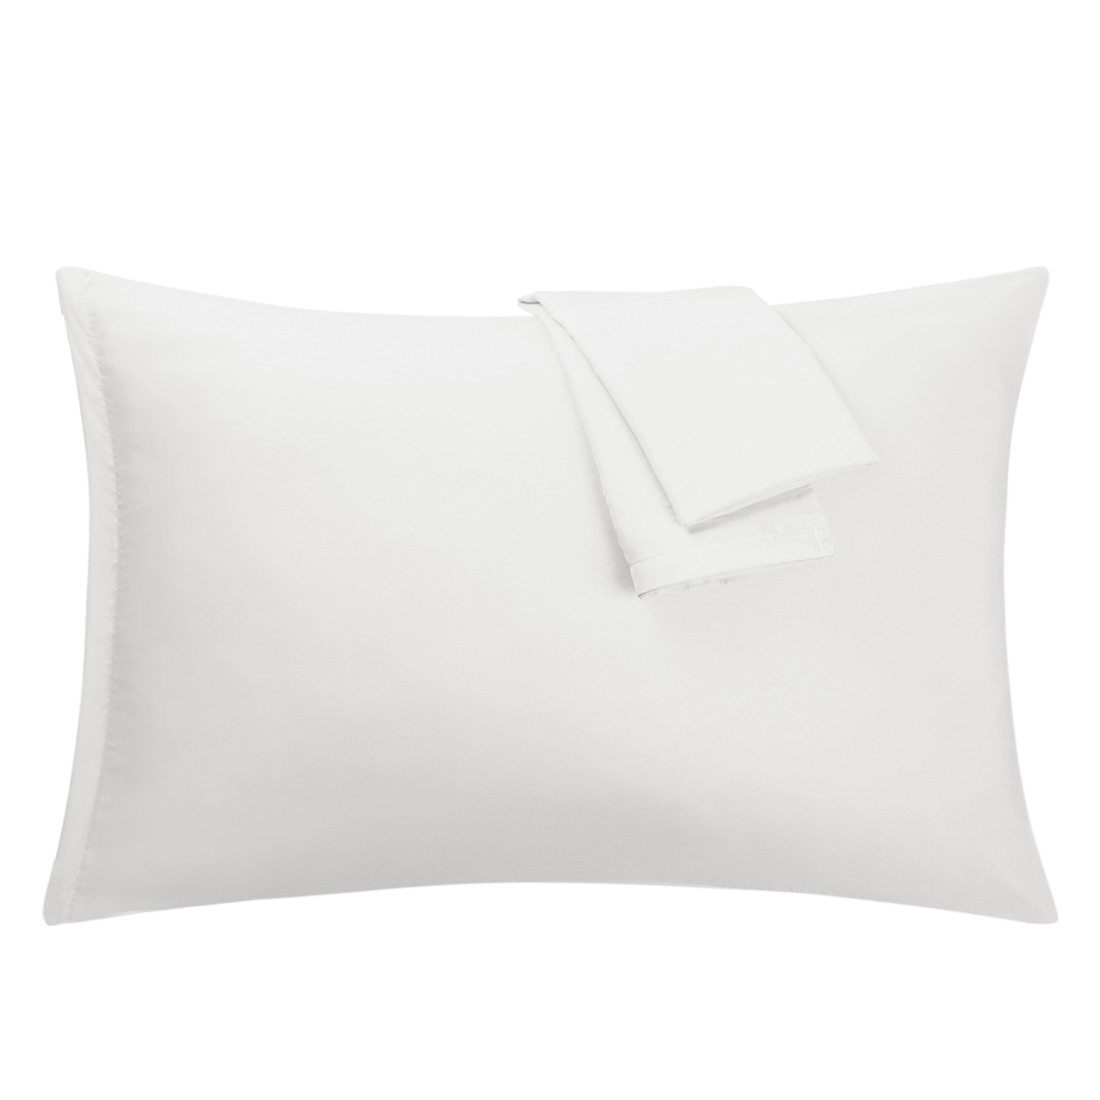 White Pillowcases Soft Microfiber Pillow Case Cover with Zipper King, 2 Pack